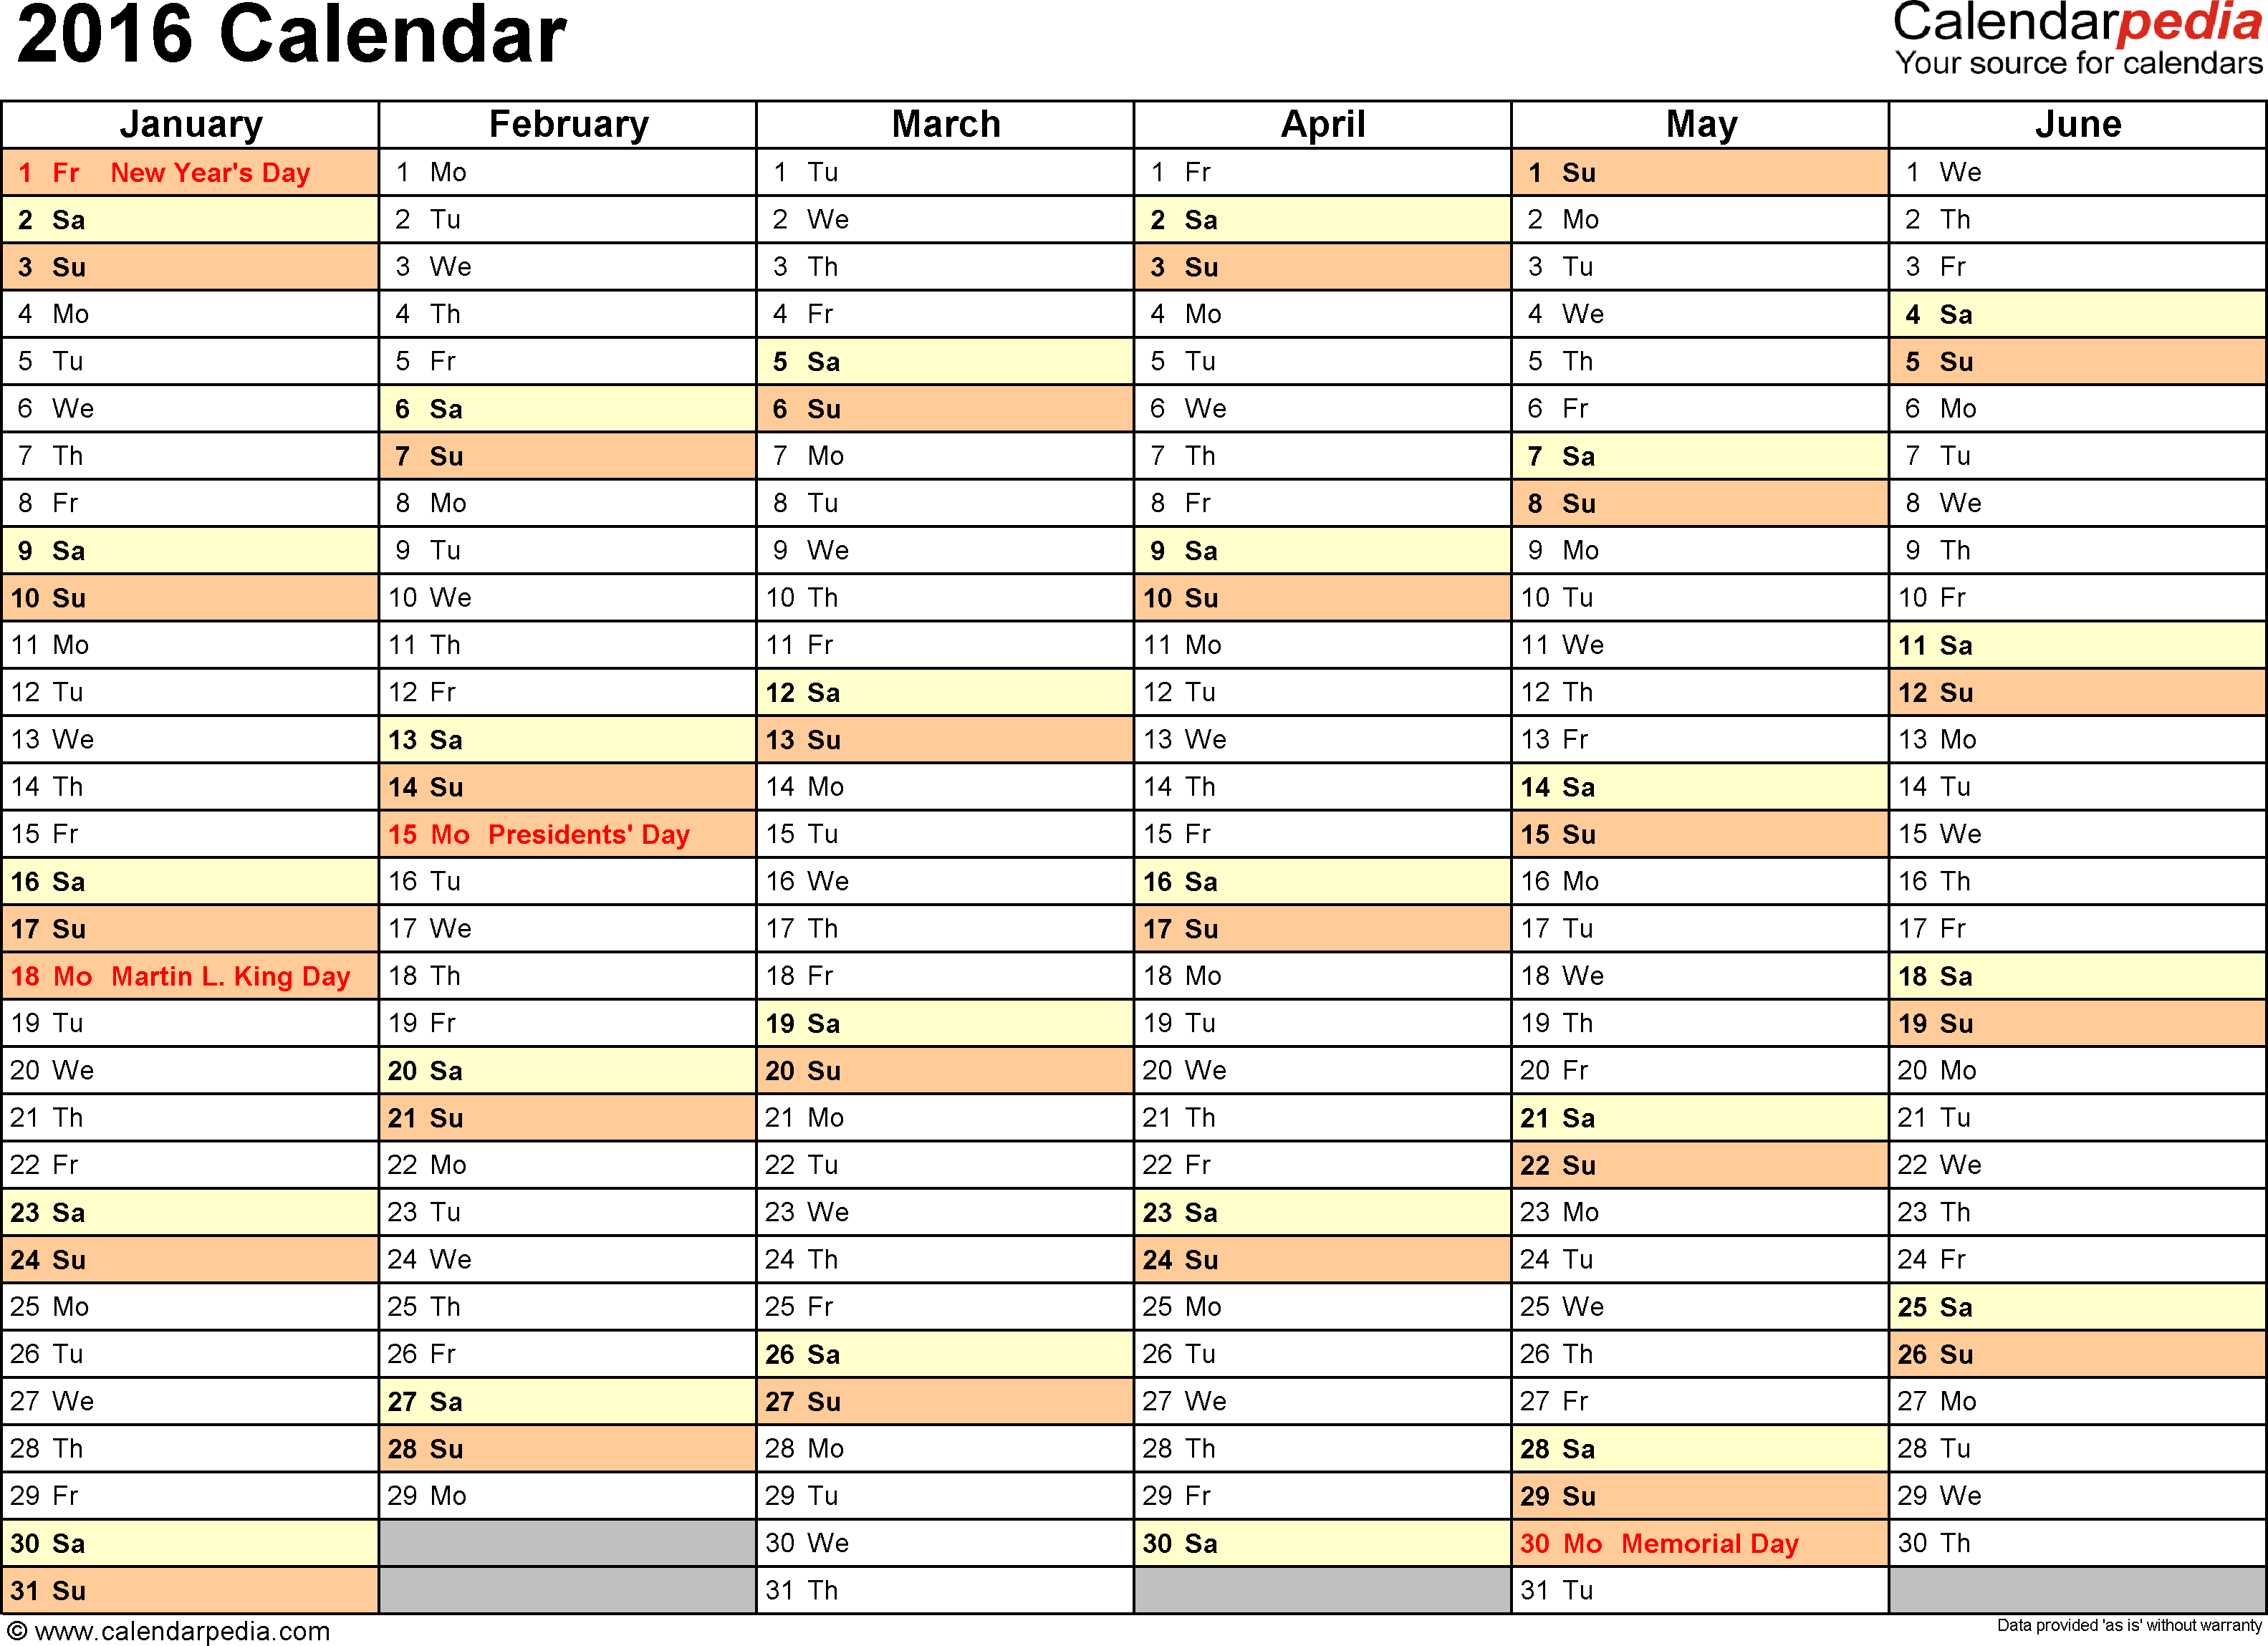 Ediblewildsus  Unique  Calendar  Download  Free Printable Excel Templates Xls With Excellent Template   Calendar For Excel Months Horizontally  Pages Landscape Orientation With Beauteous Definition Of Microsoft Excel Also Graph A Function In Excel In Addition Export Word Table To Excel And Amortization Chart Excel As Well As How To Make A Stacked Bar Chart In Excel Additionally Creating A Matrix In Excel From Calendarpediacom With Ediblewildsus  Excellent  Calendar  Download  Free Printable Excel Templates Xls With Beauteous Template   Calendar For Excel Months Horizontally  Pages Landscape Orientation And Unique Definition Of Microsoft Excel Also Graph A Function In Excel In Addition Export Word Table To Excel From Calendarpediacom